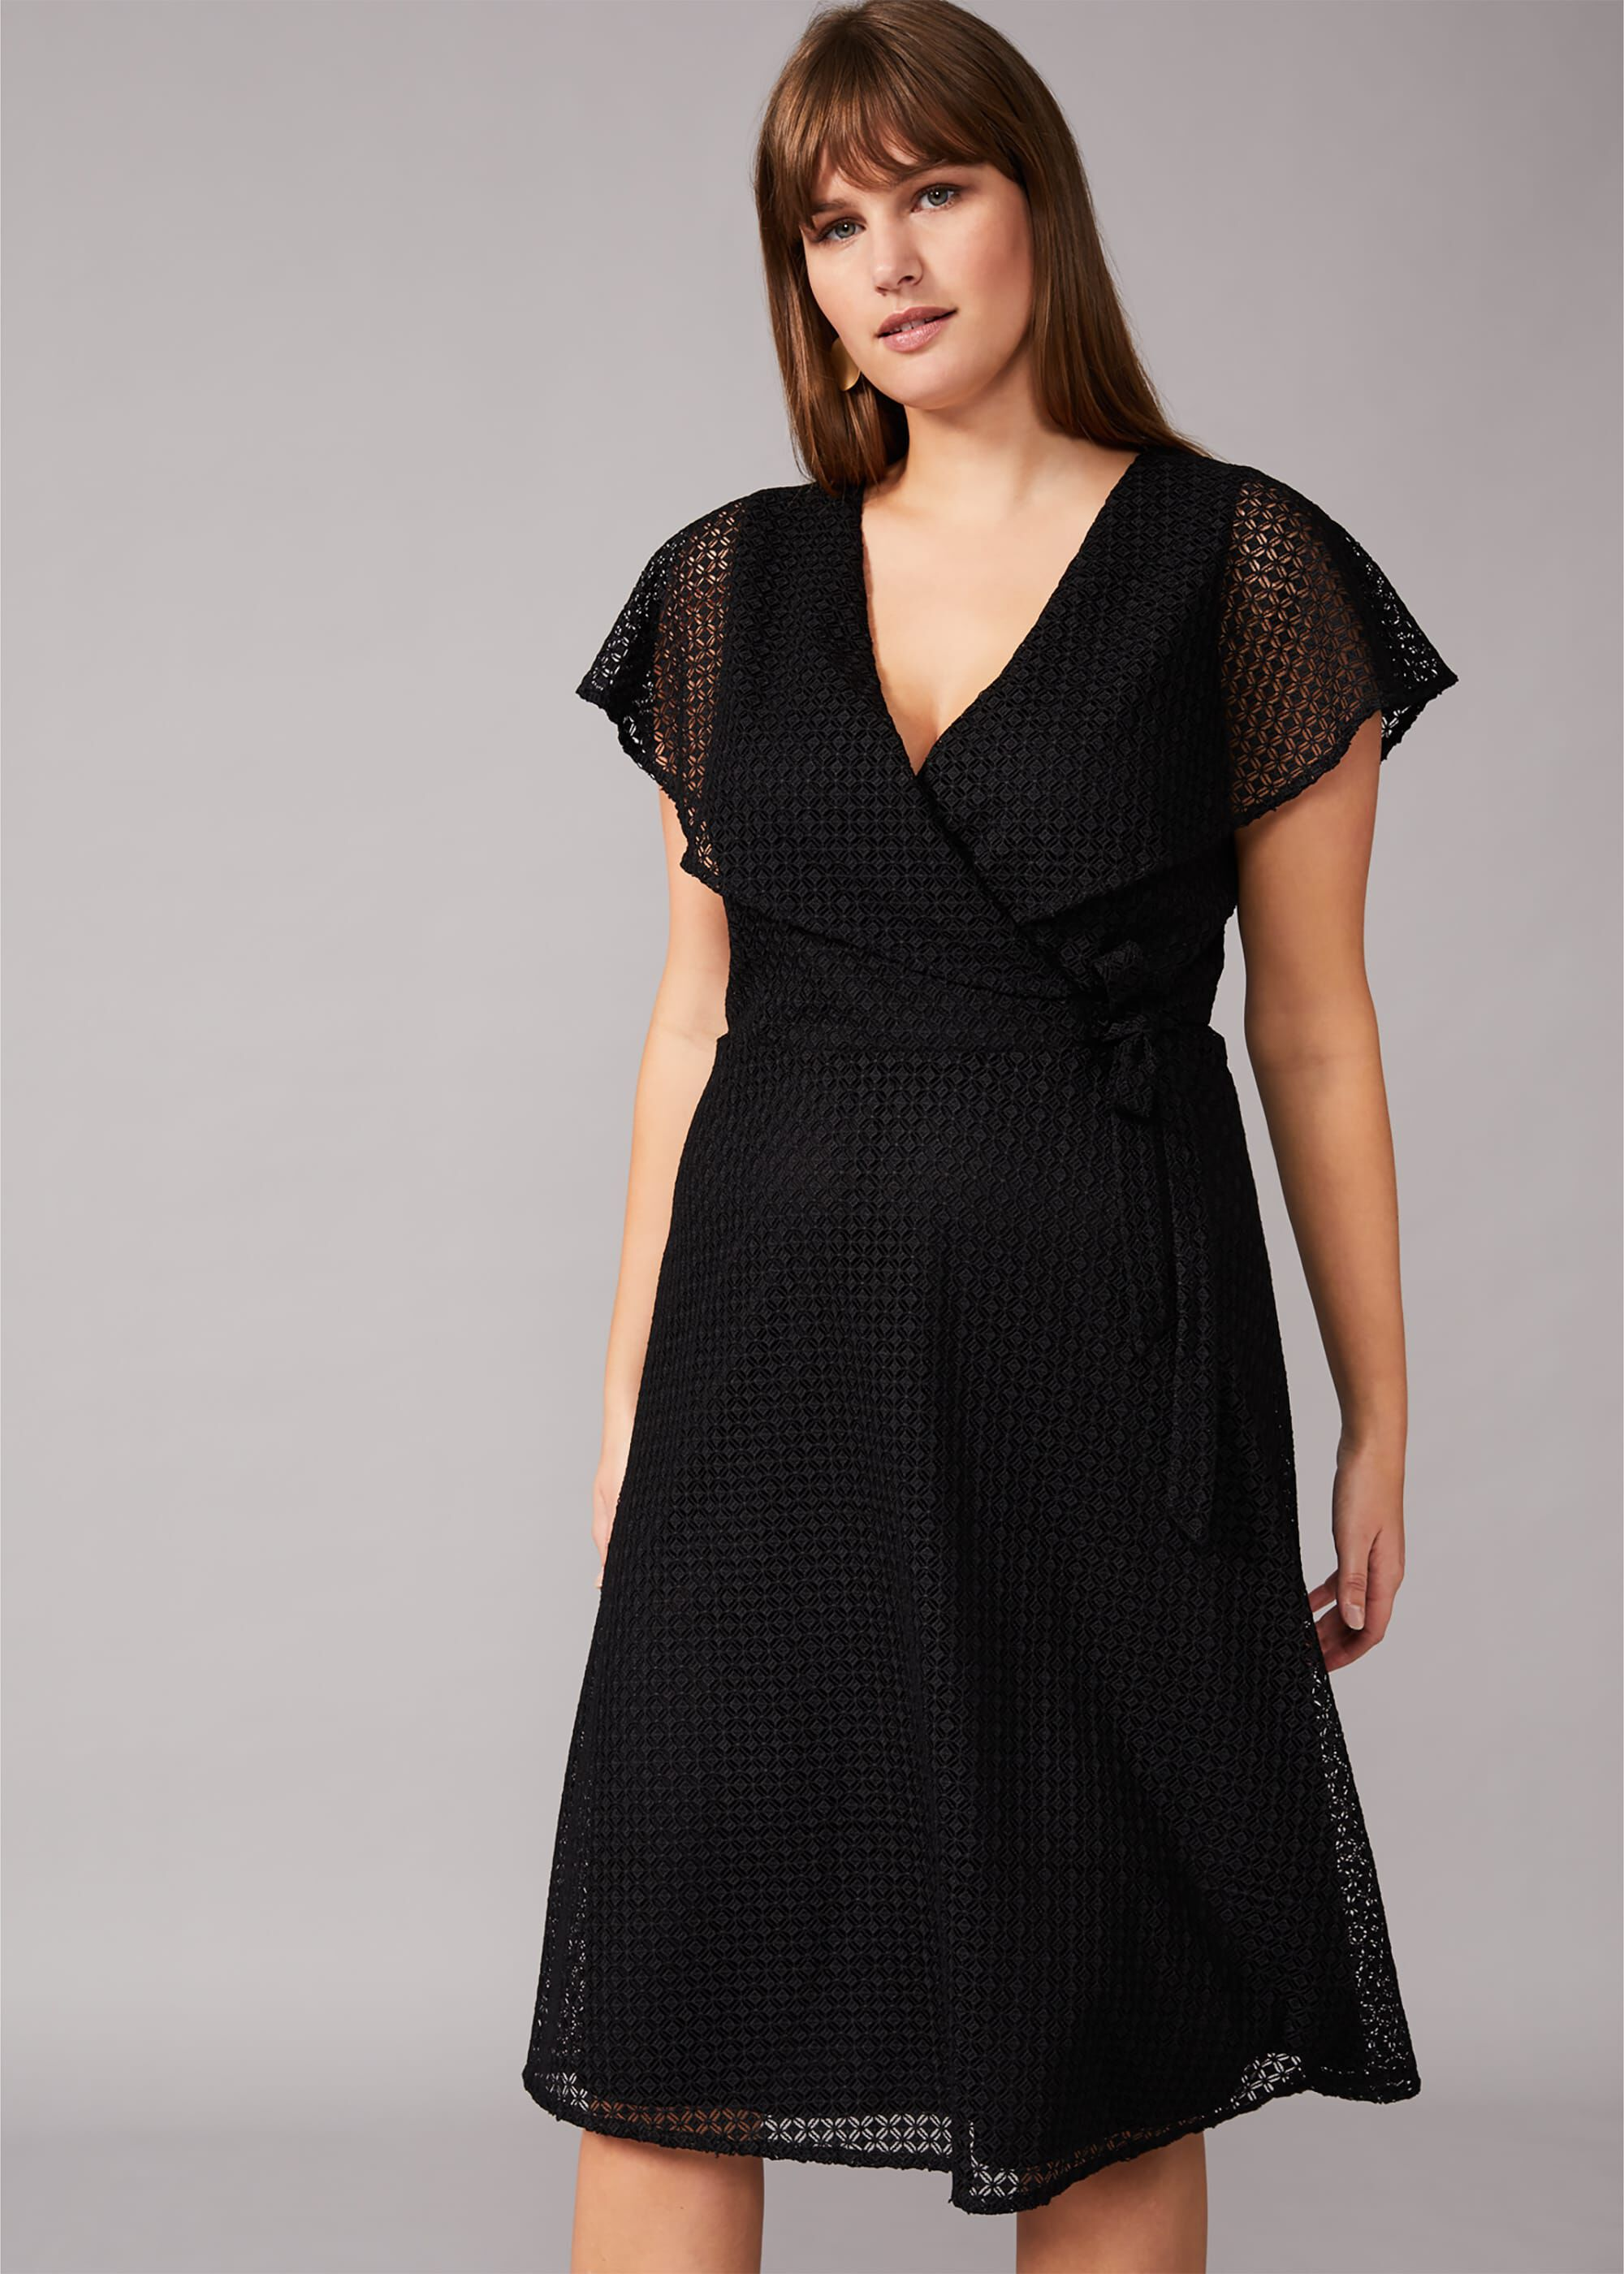 Studio 8 Esmae Geo Lace Dress, Black, Fit & Flare, Occasion Dress